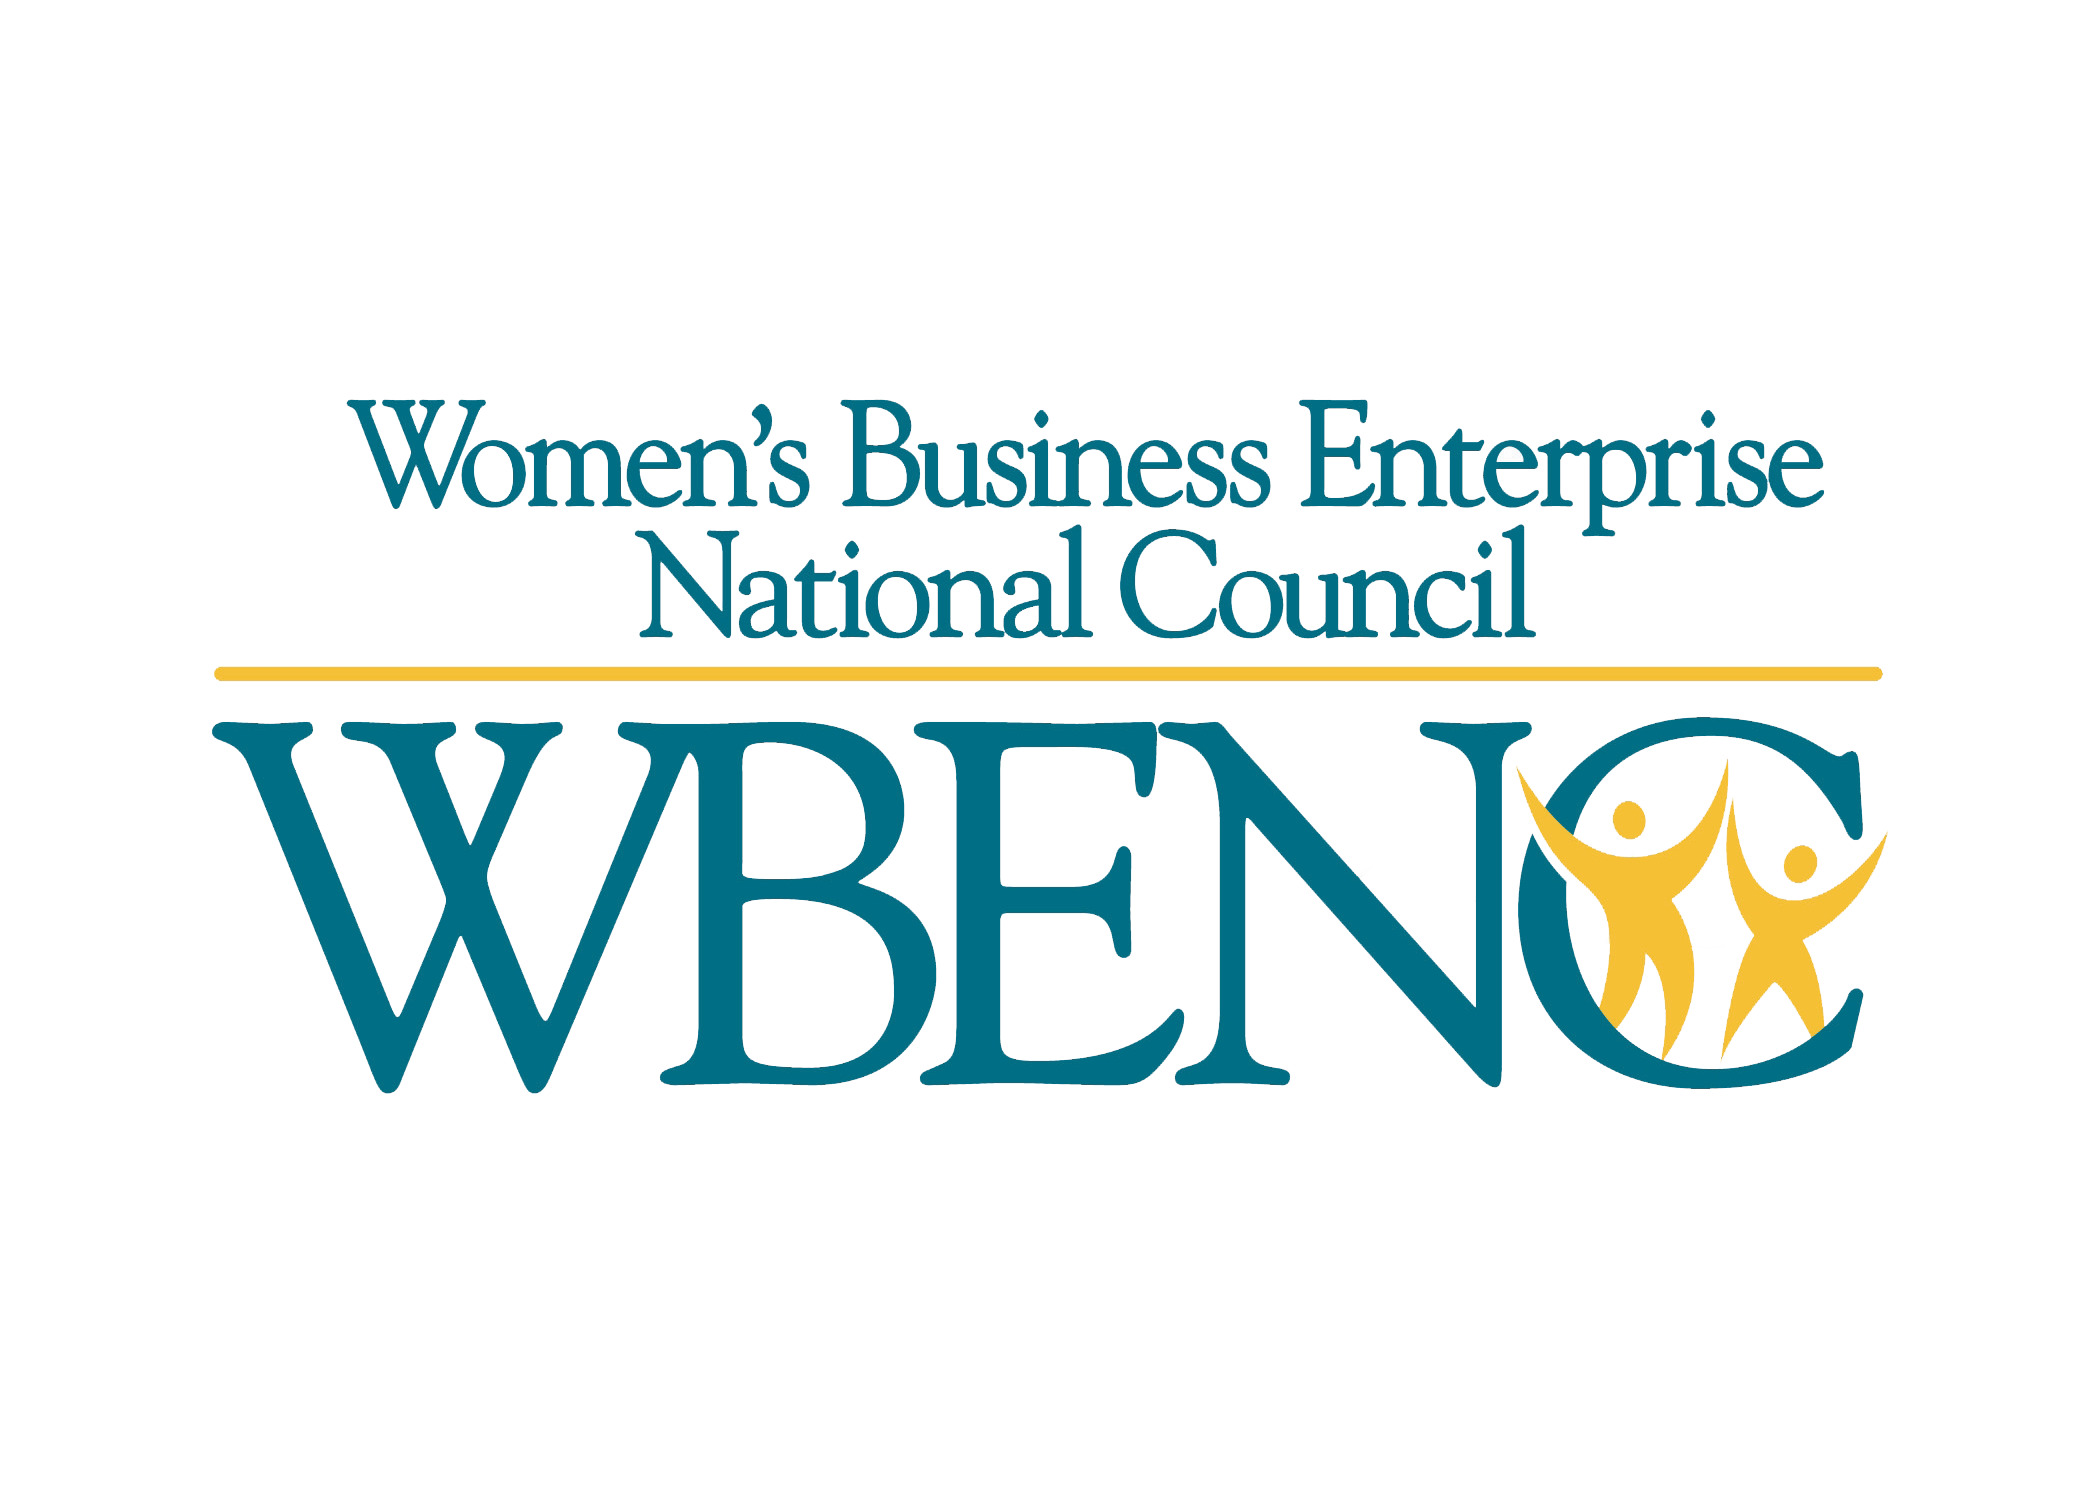 wbenc.transparent.png